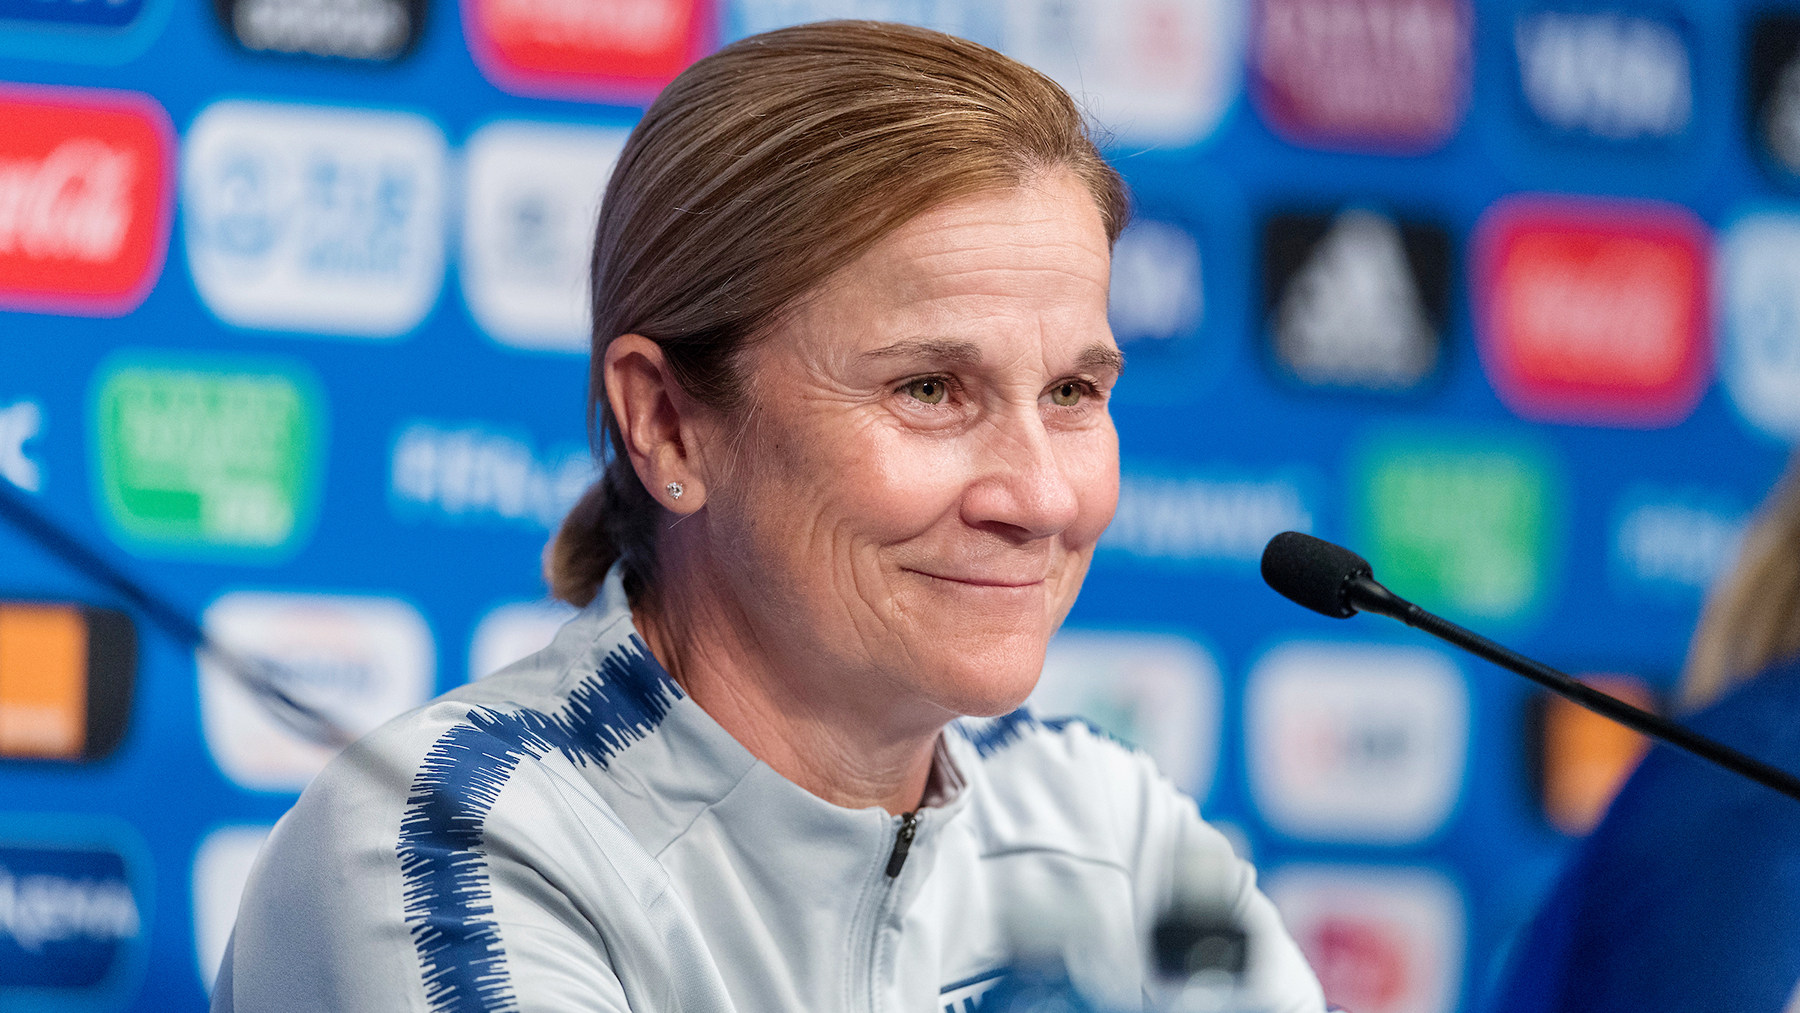 Coach Jill Ellis will be the 2020 commencement speaker at the University of Illinois. Photo by ISI Photos